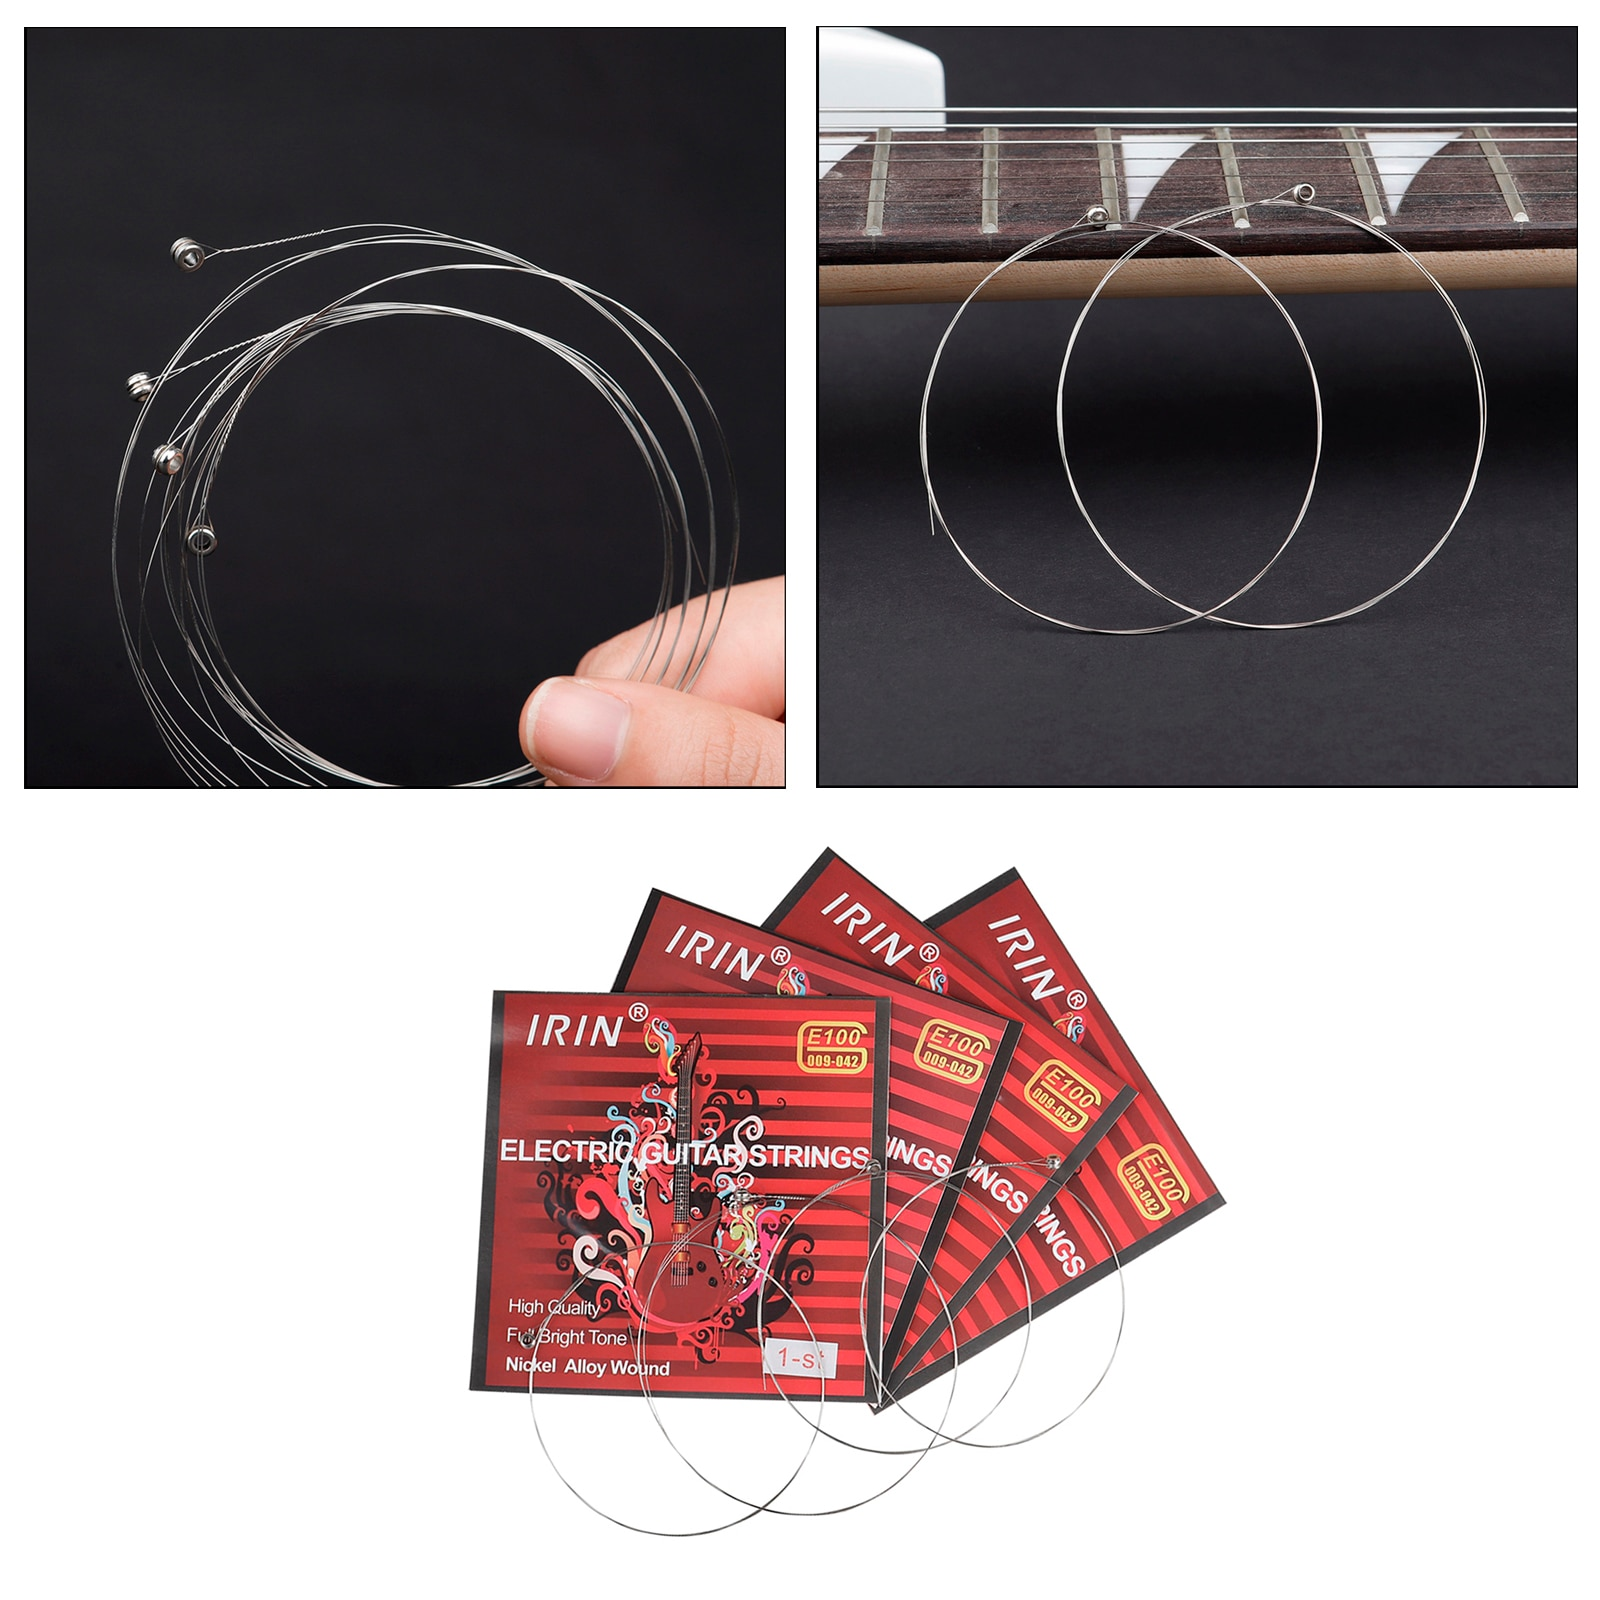 100 Pieces Electric Guitar Stainless Steel Nickel Alloy Wound Strings E-1 DIY Repair Accessories Parts enlarge